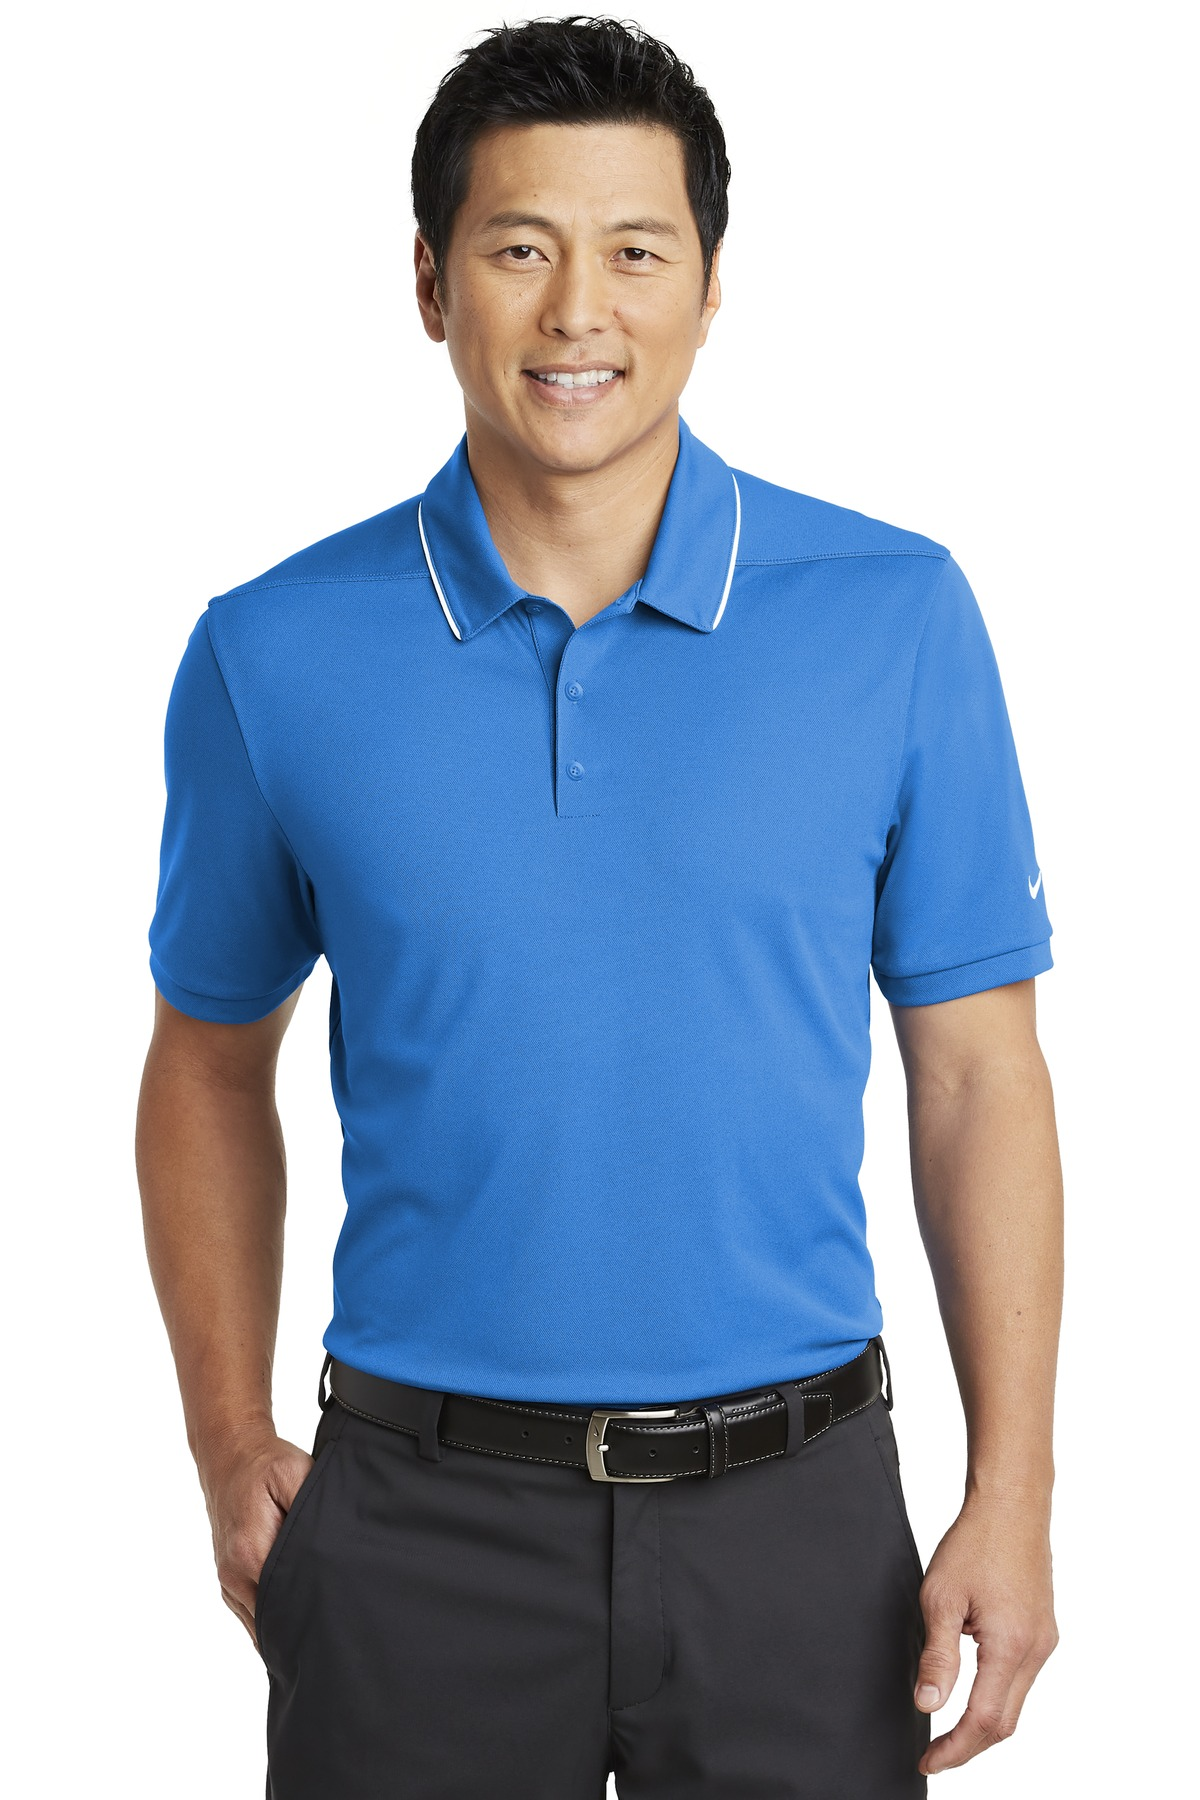 Nike Dri-FIT Edge Tipped Polo. NKAA1849